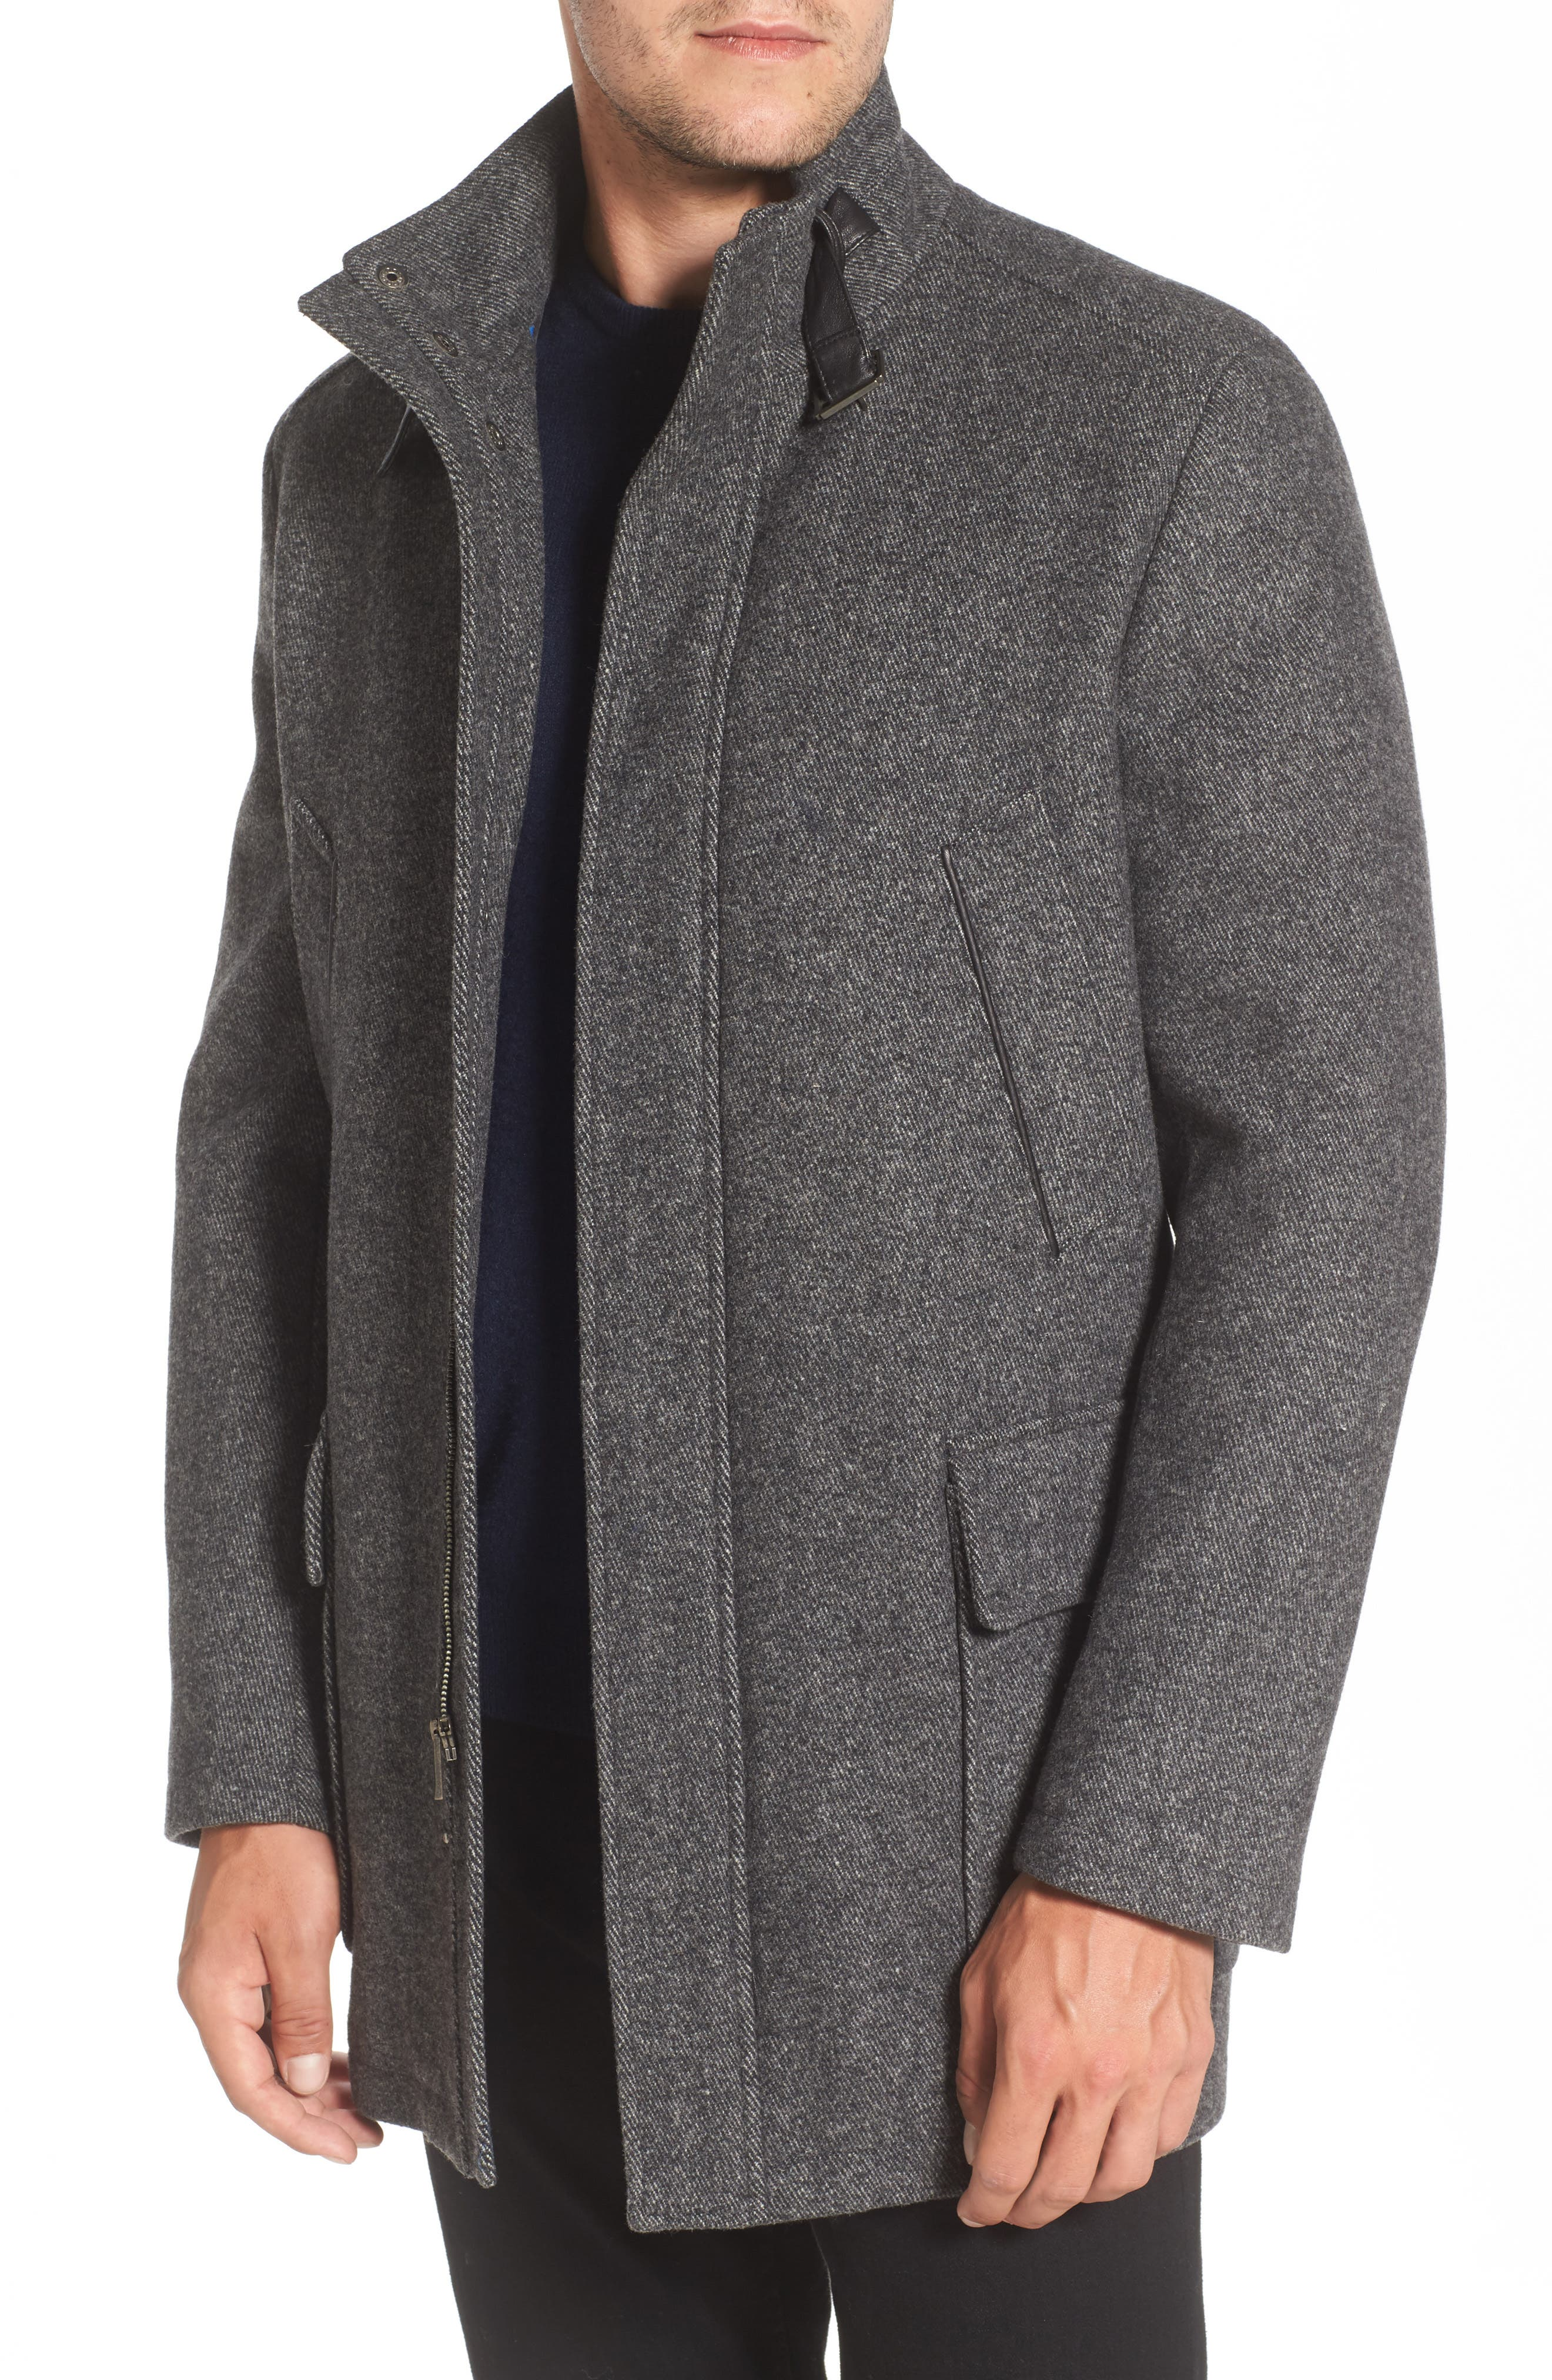 Wool Blend Car Coat with Removable Knit Bib,                             Alternate thumbnail 4, color,                             073